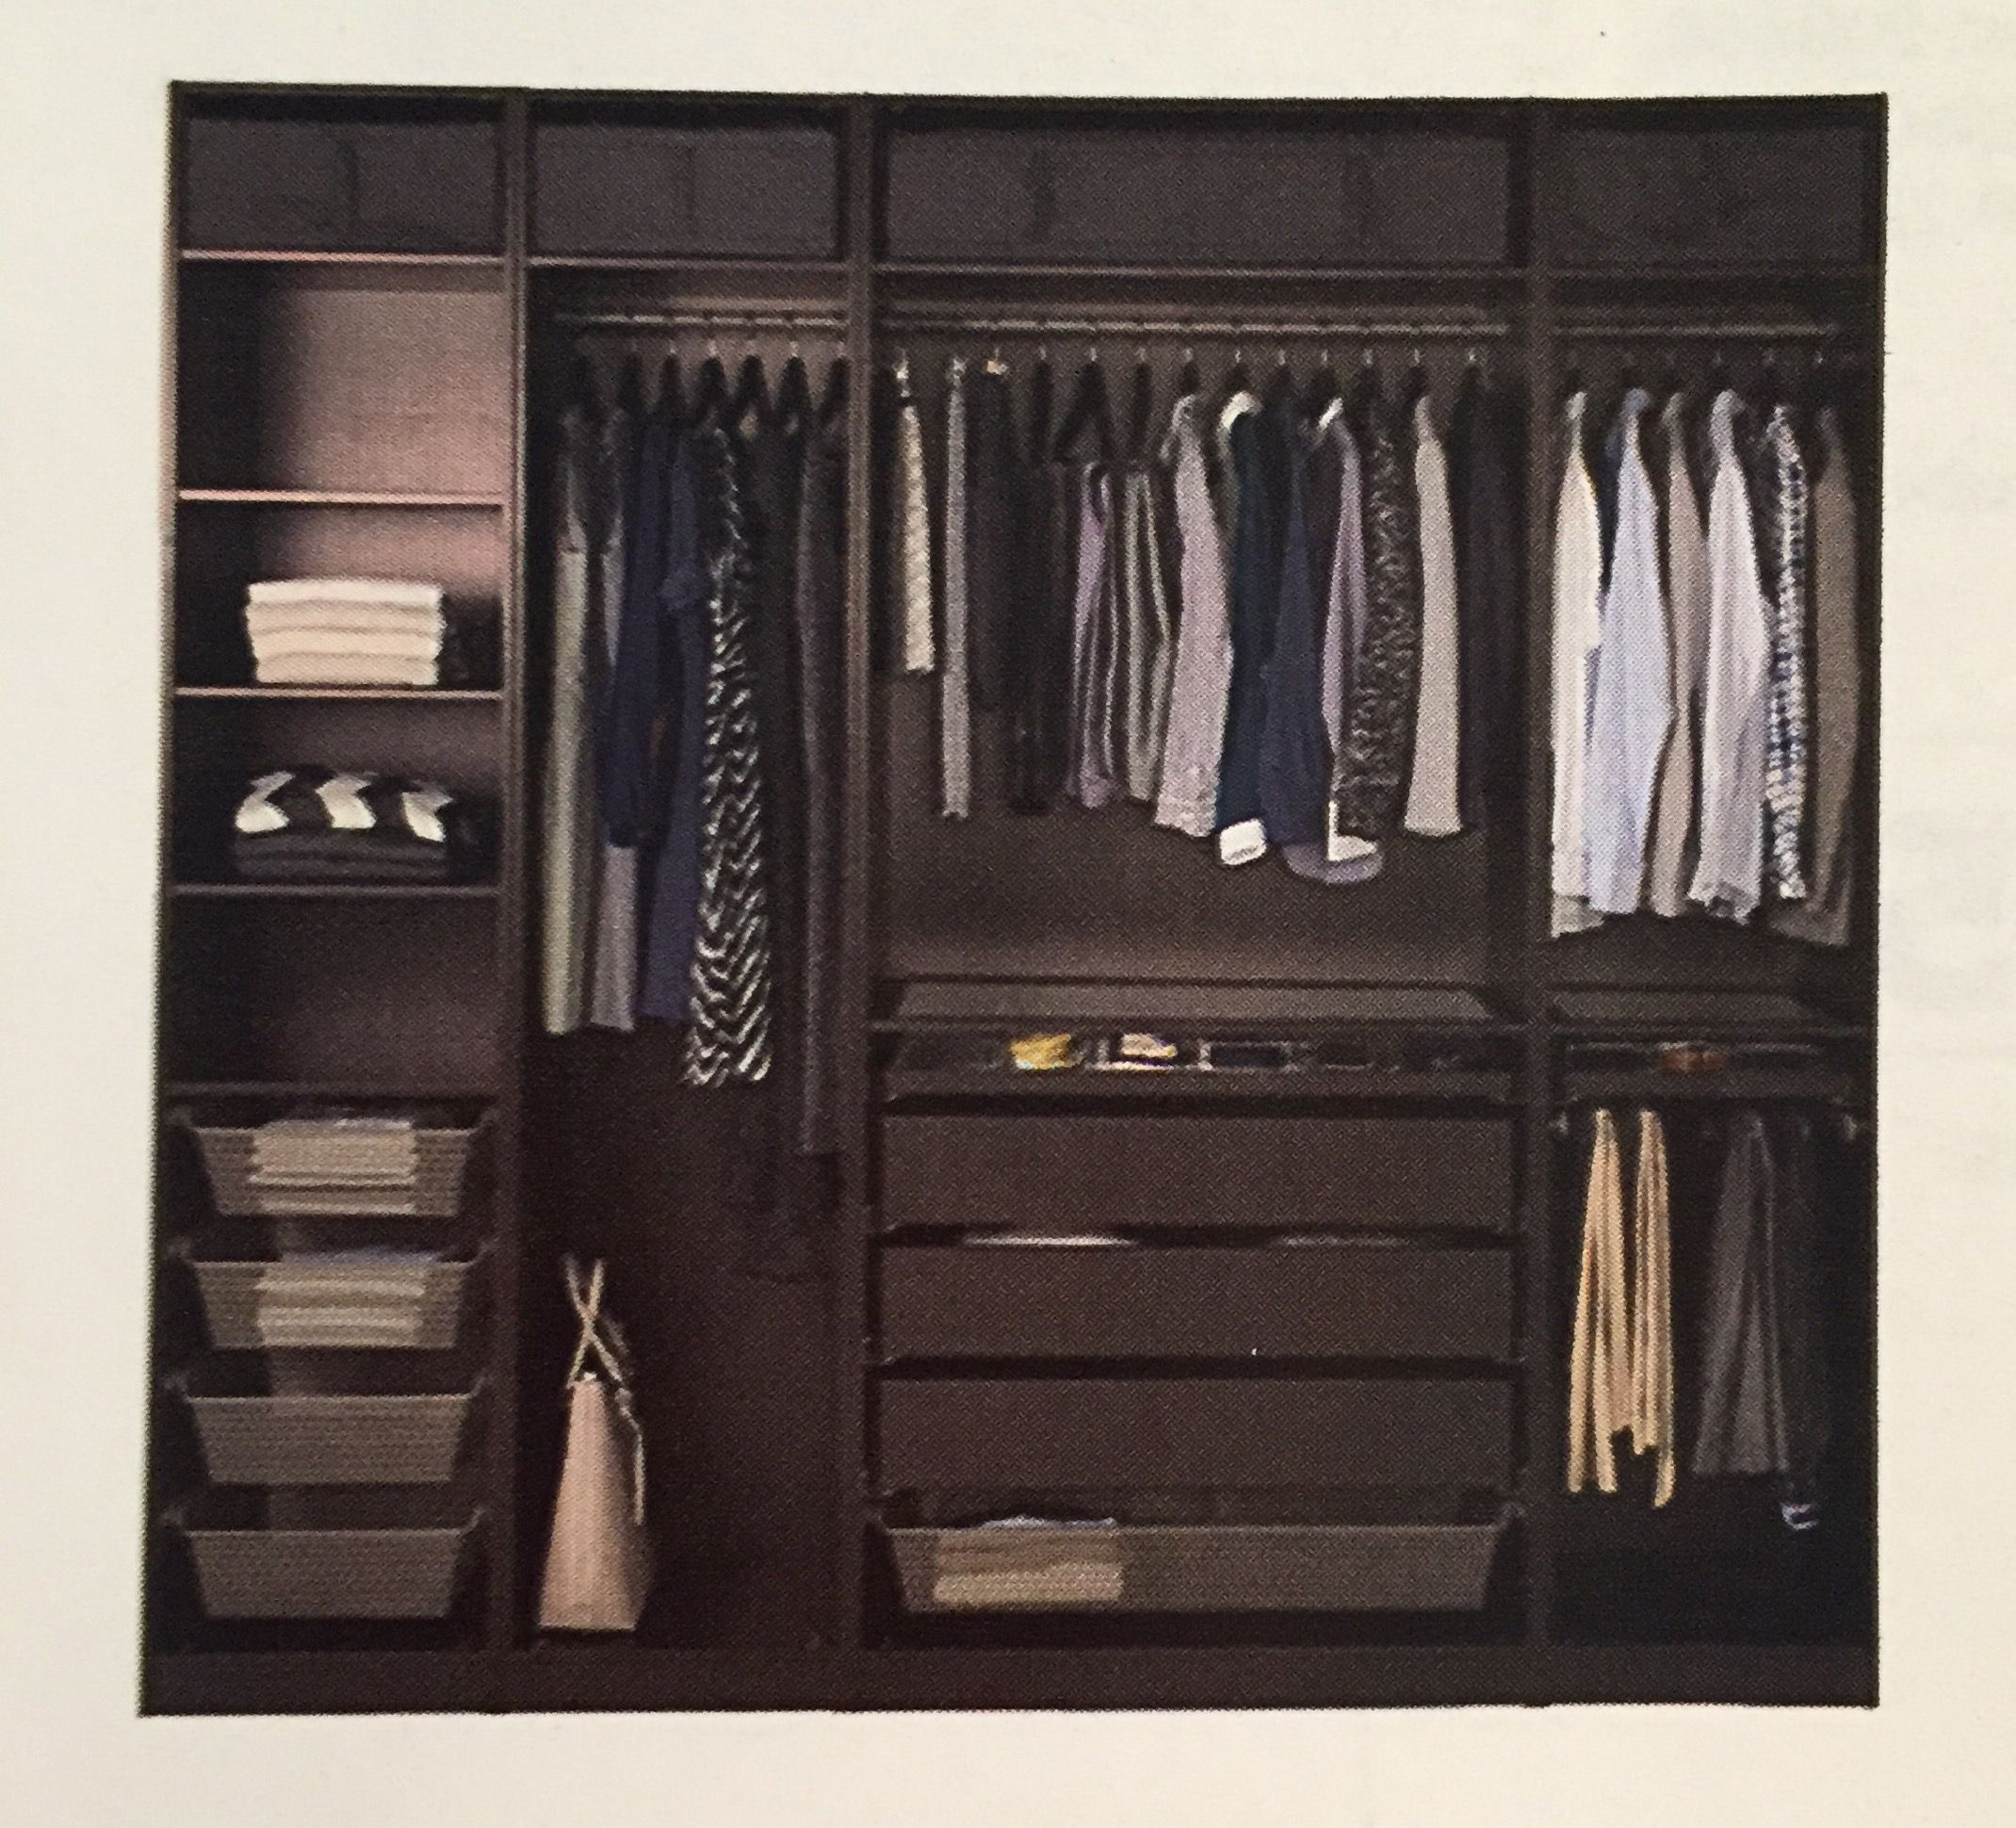 shelving for organizers lowes systems organizer shelf ideas units full wire cheap allen depot home of size shelves door roth pantry drawers storage closet